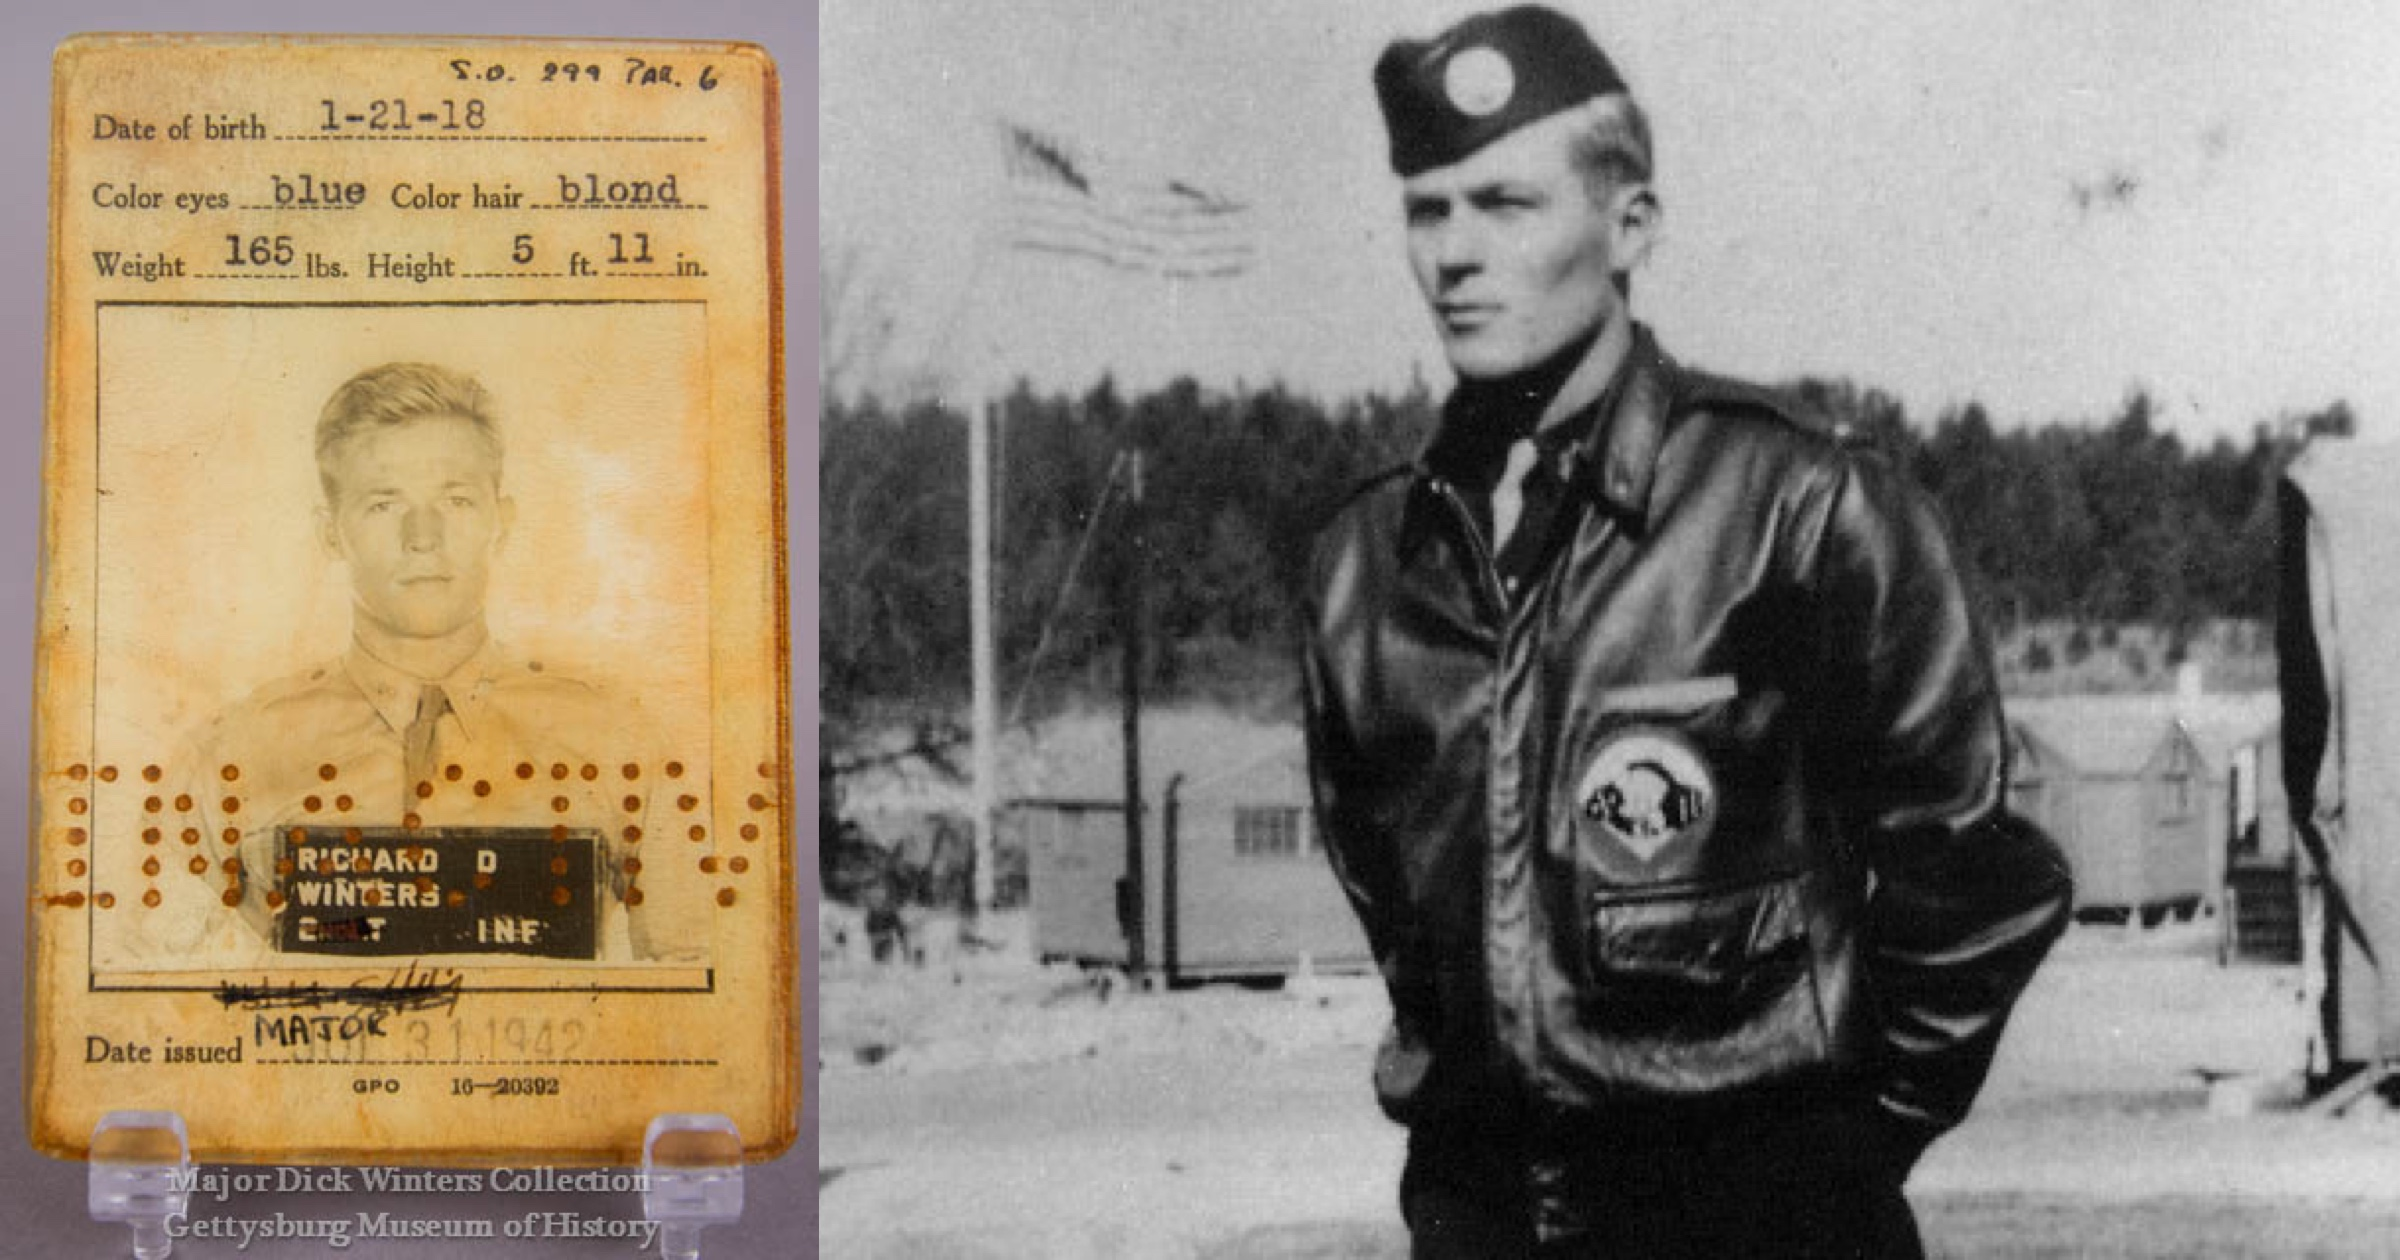 Remembering Major Dick Winters and his ties to Lebanon County